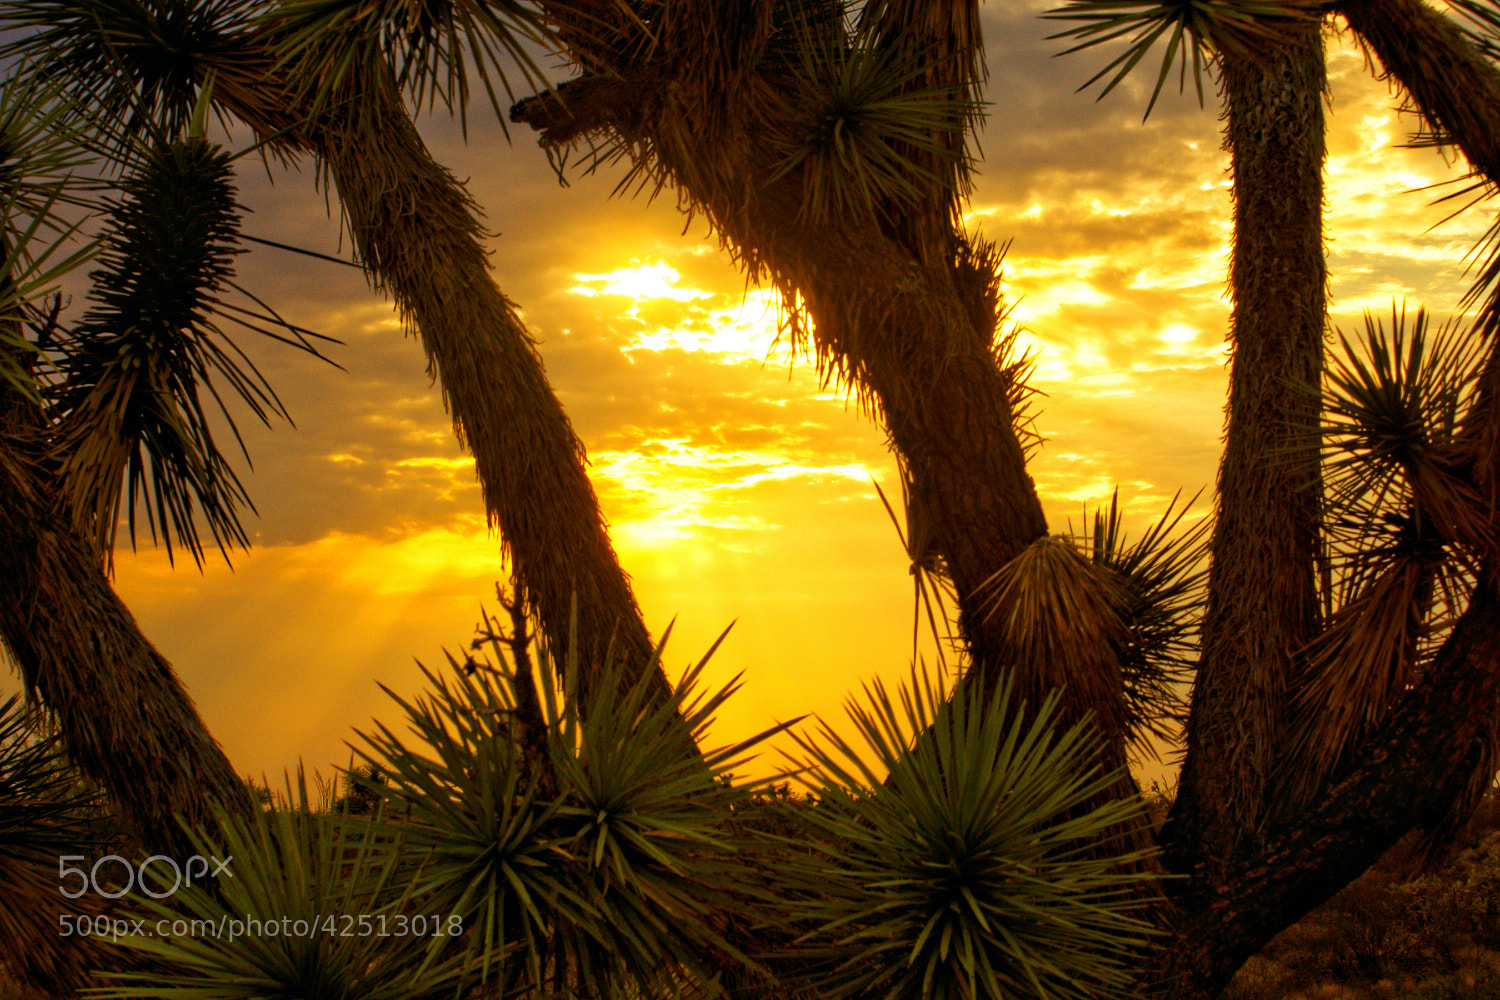 Photograph Joshua tree by James Green on 500px